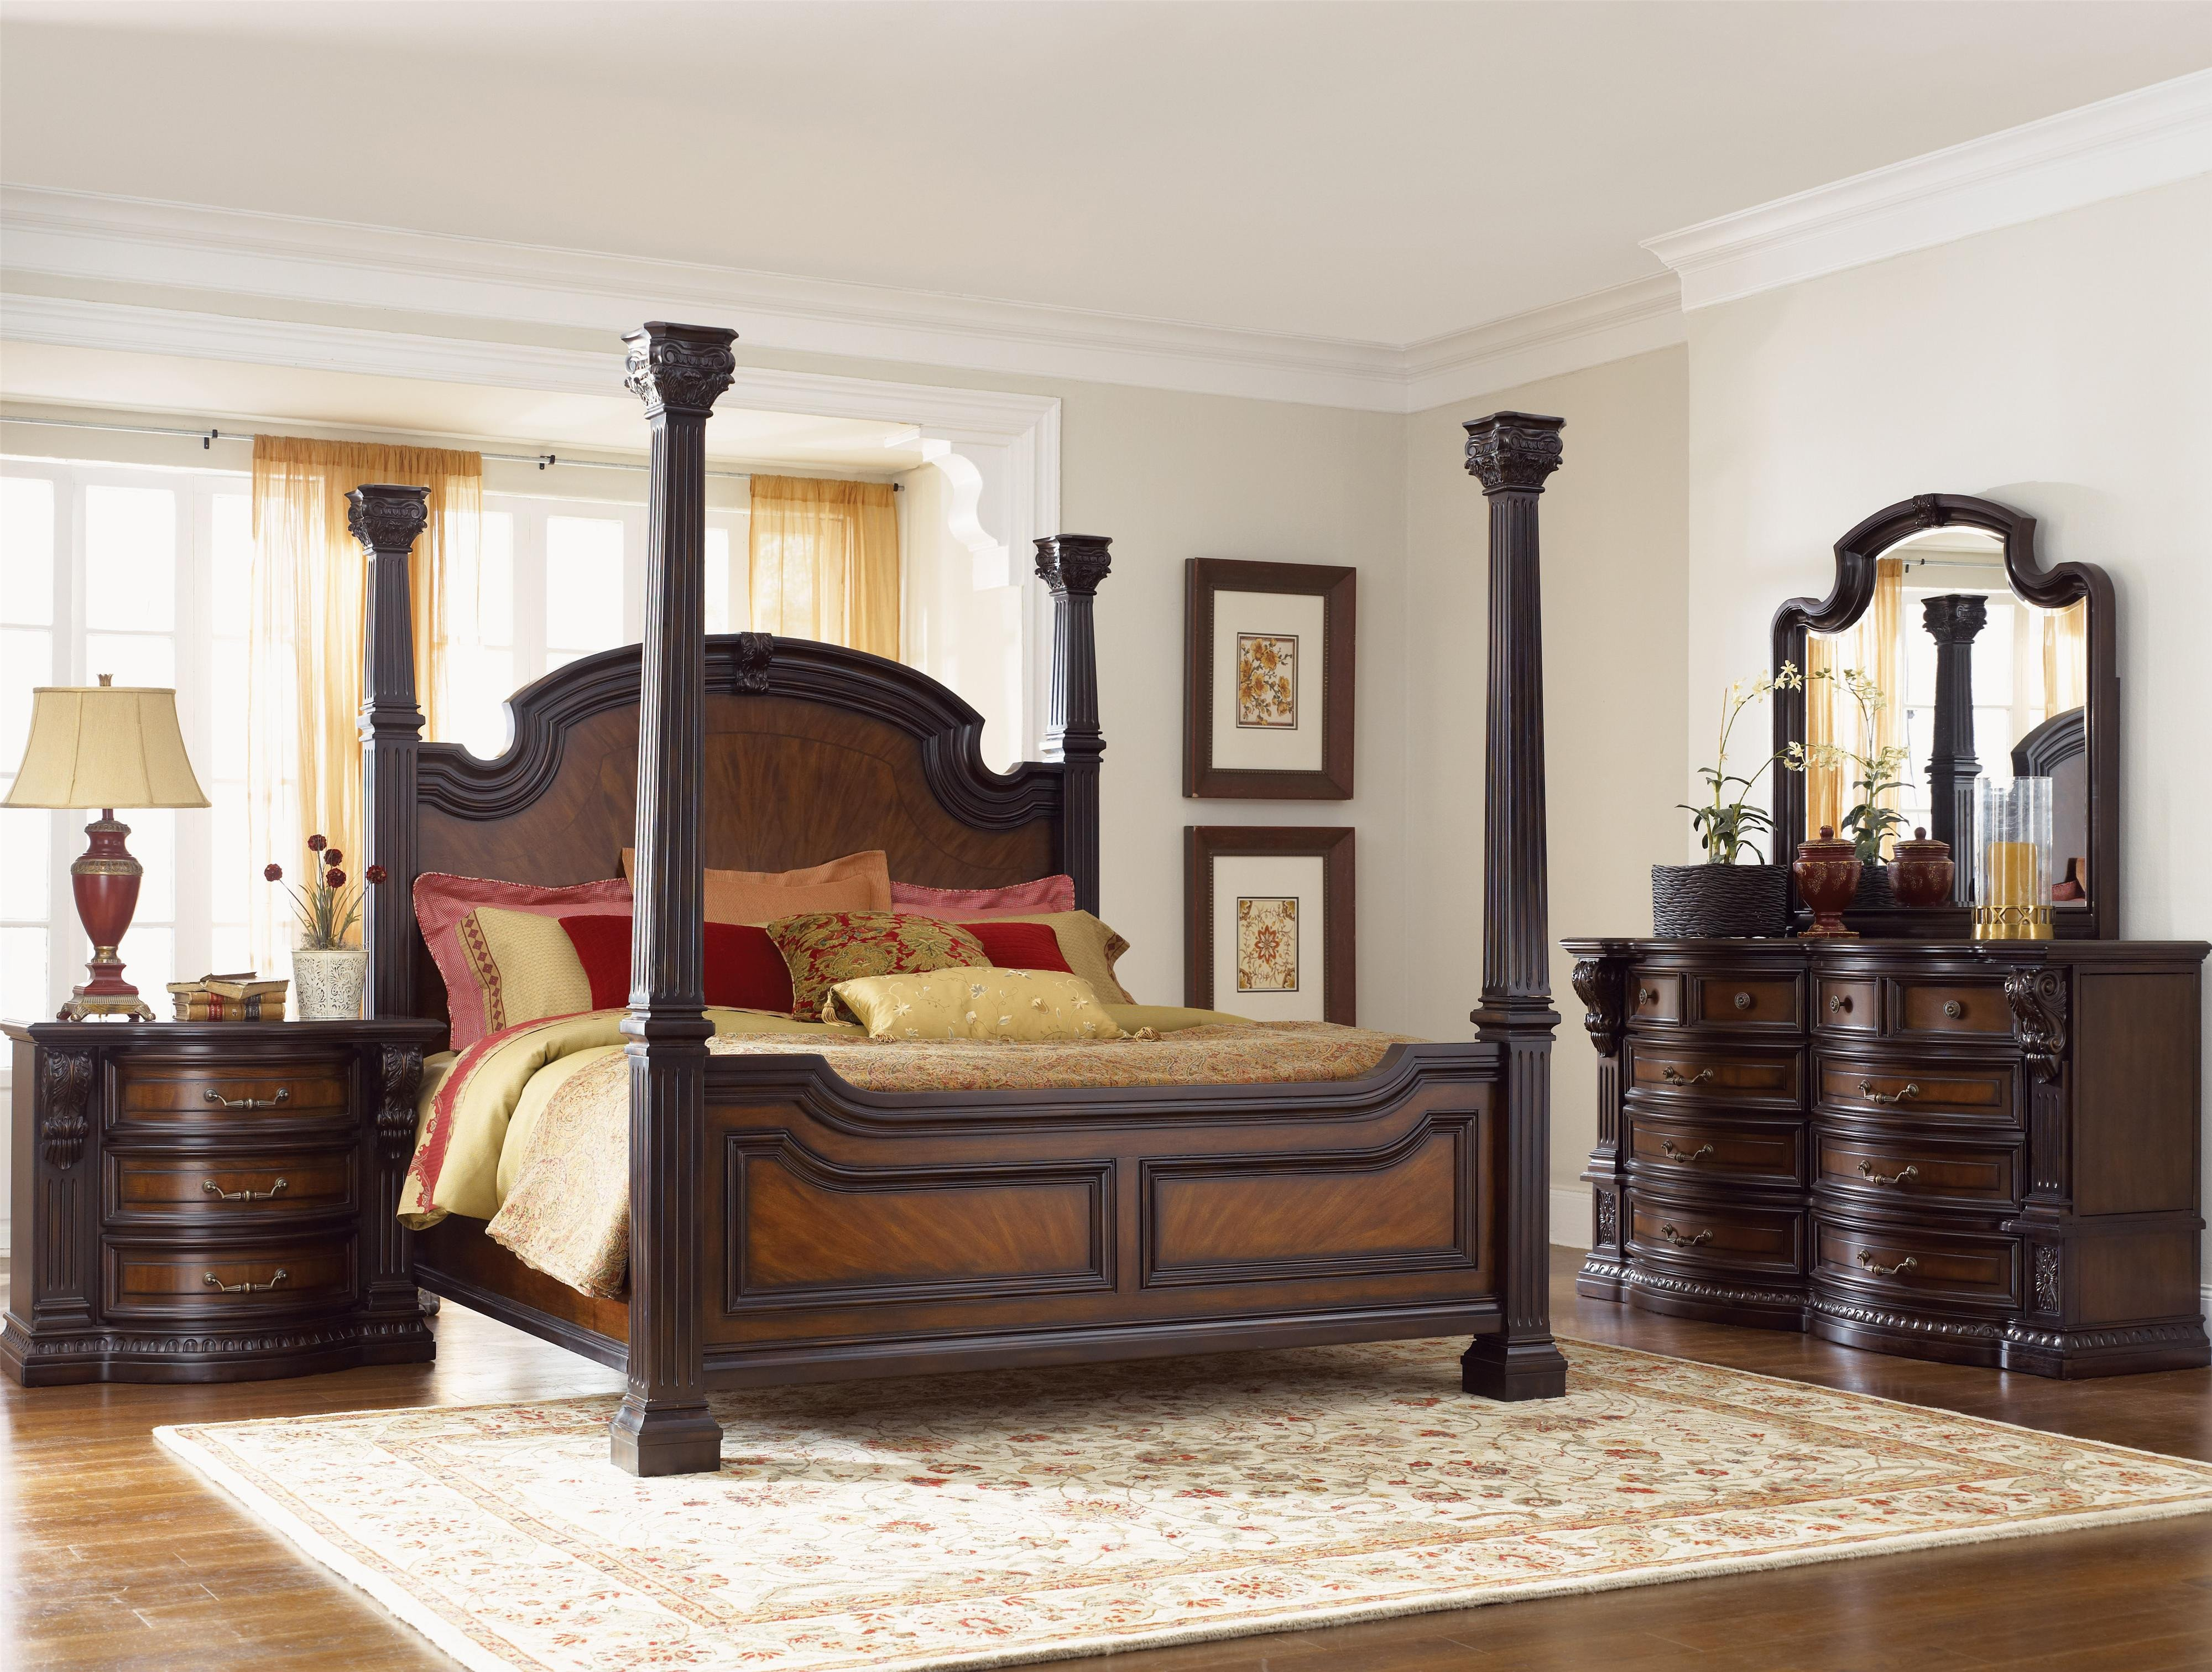 King Size Bedroom Set Cheap New Grand Estates 02 by Fairmont Designs Royal Furniture